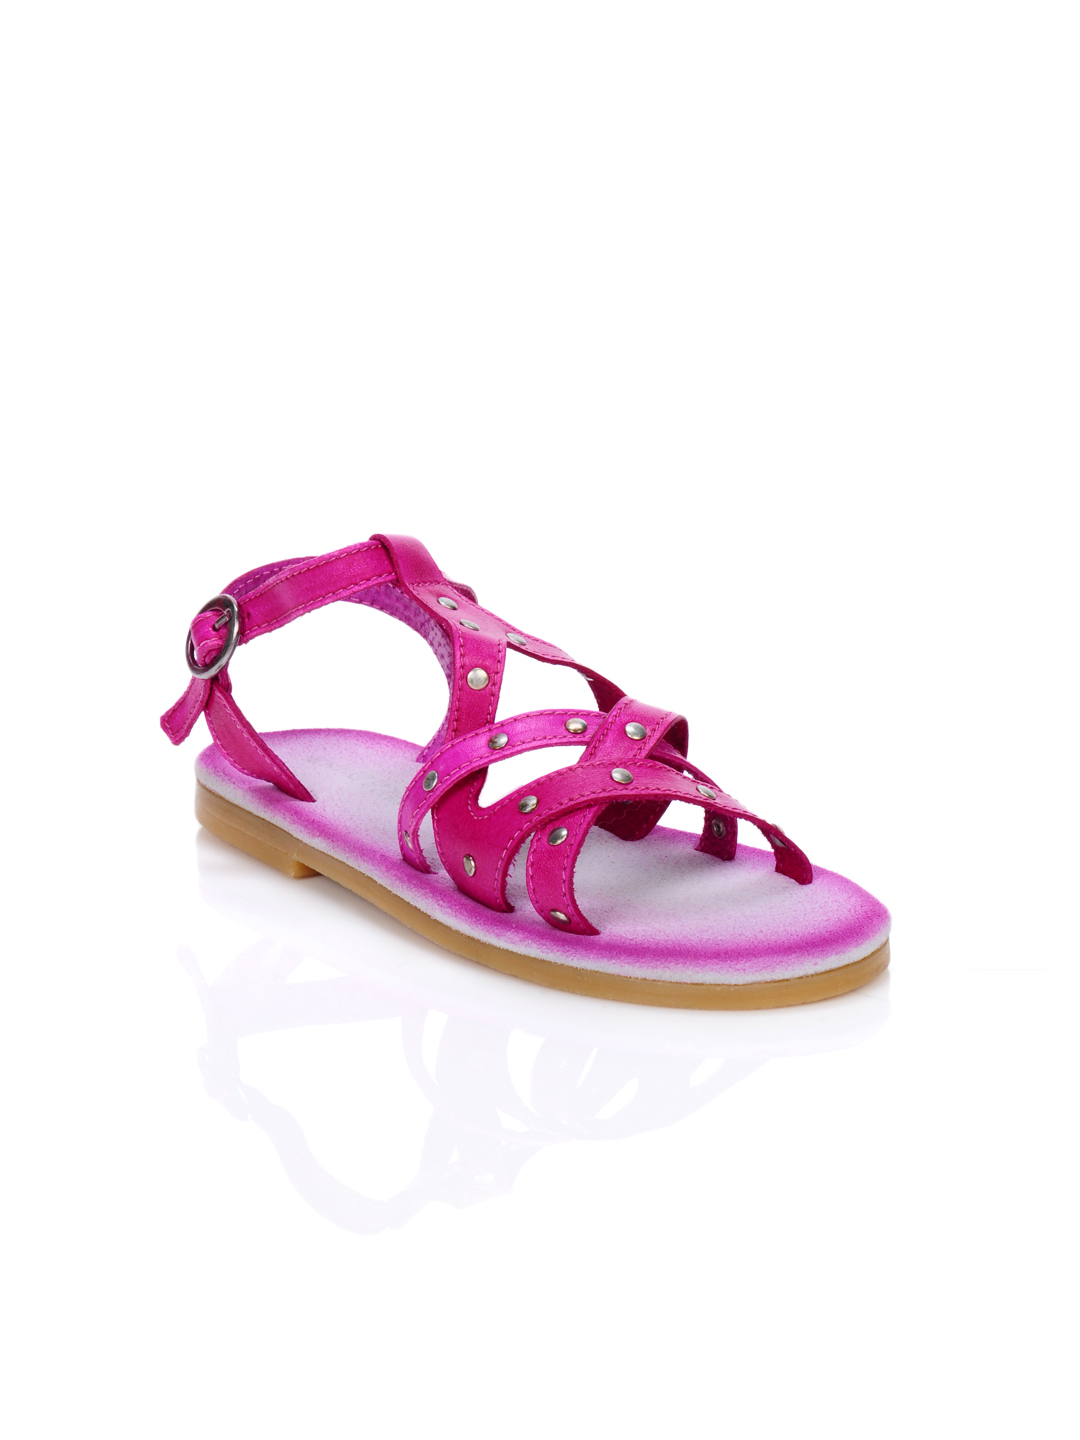 Enroute Teens Pink Sandals